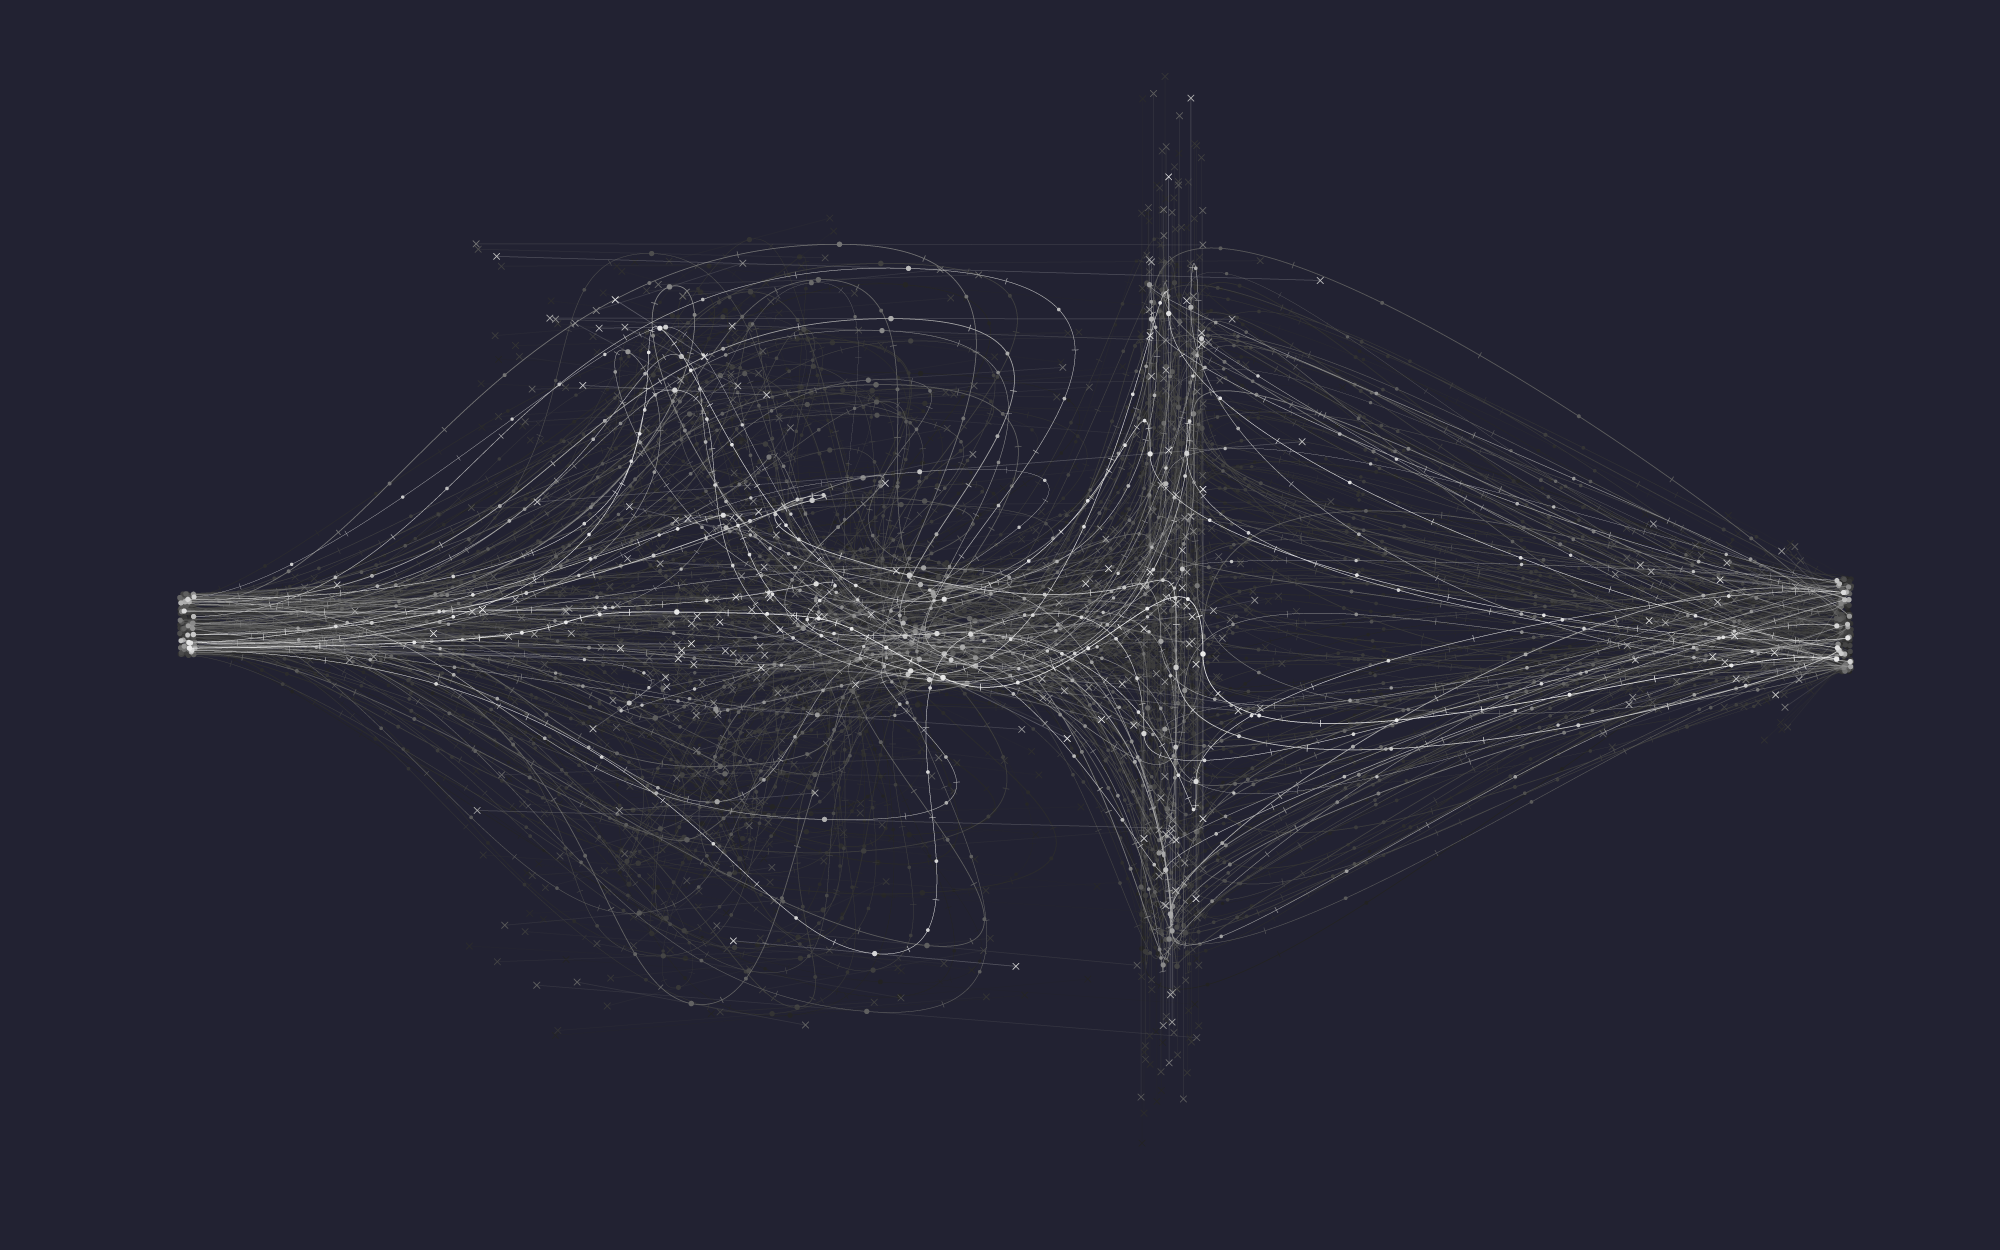 Rejection Field | generative art | Generative art, Data